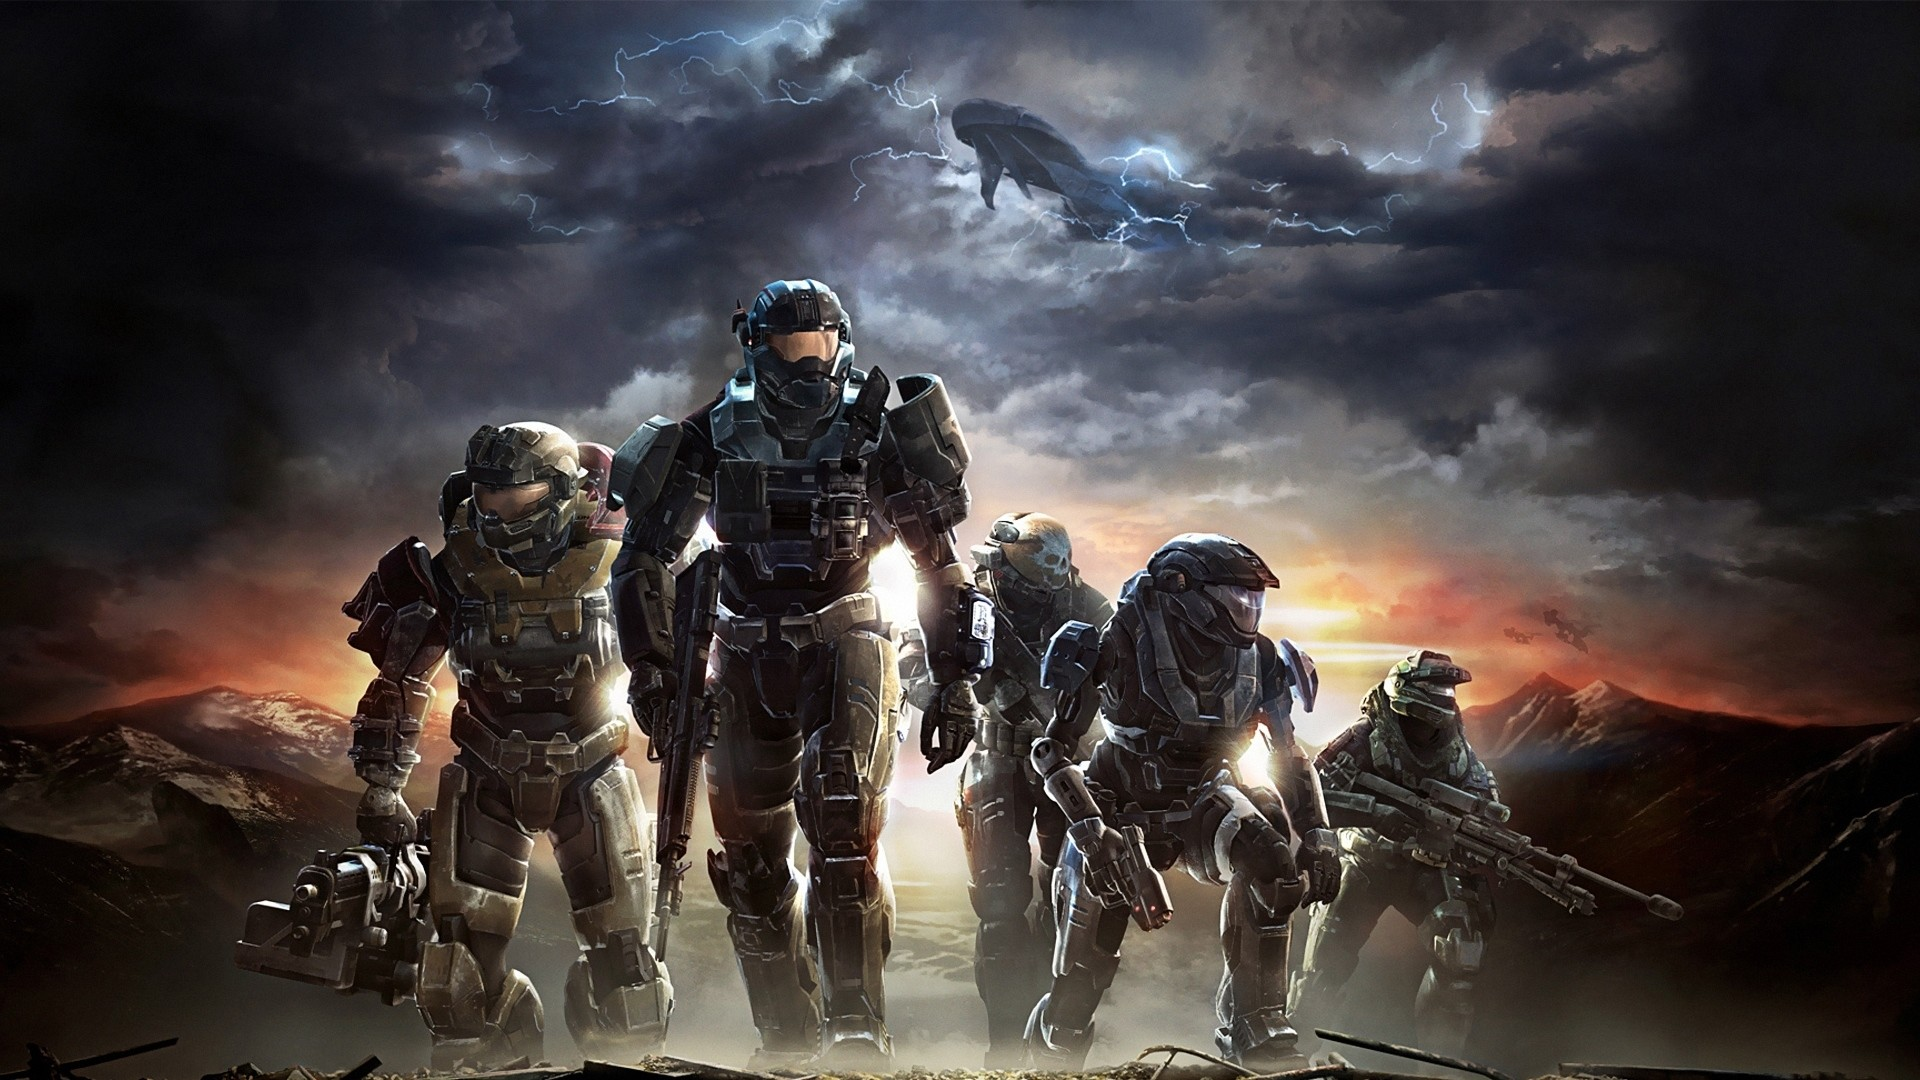 Full Hd 1080P Halo Wallpapers Hd, Desktop Backgrounds throughout Halo  Wallpaper 1920X1080